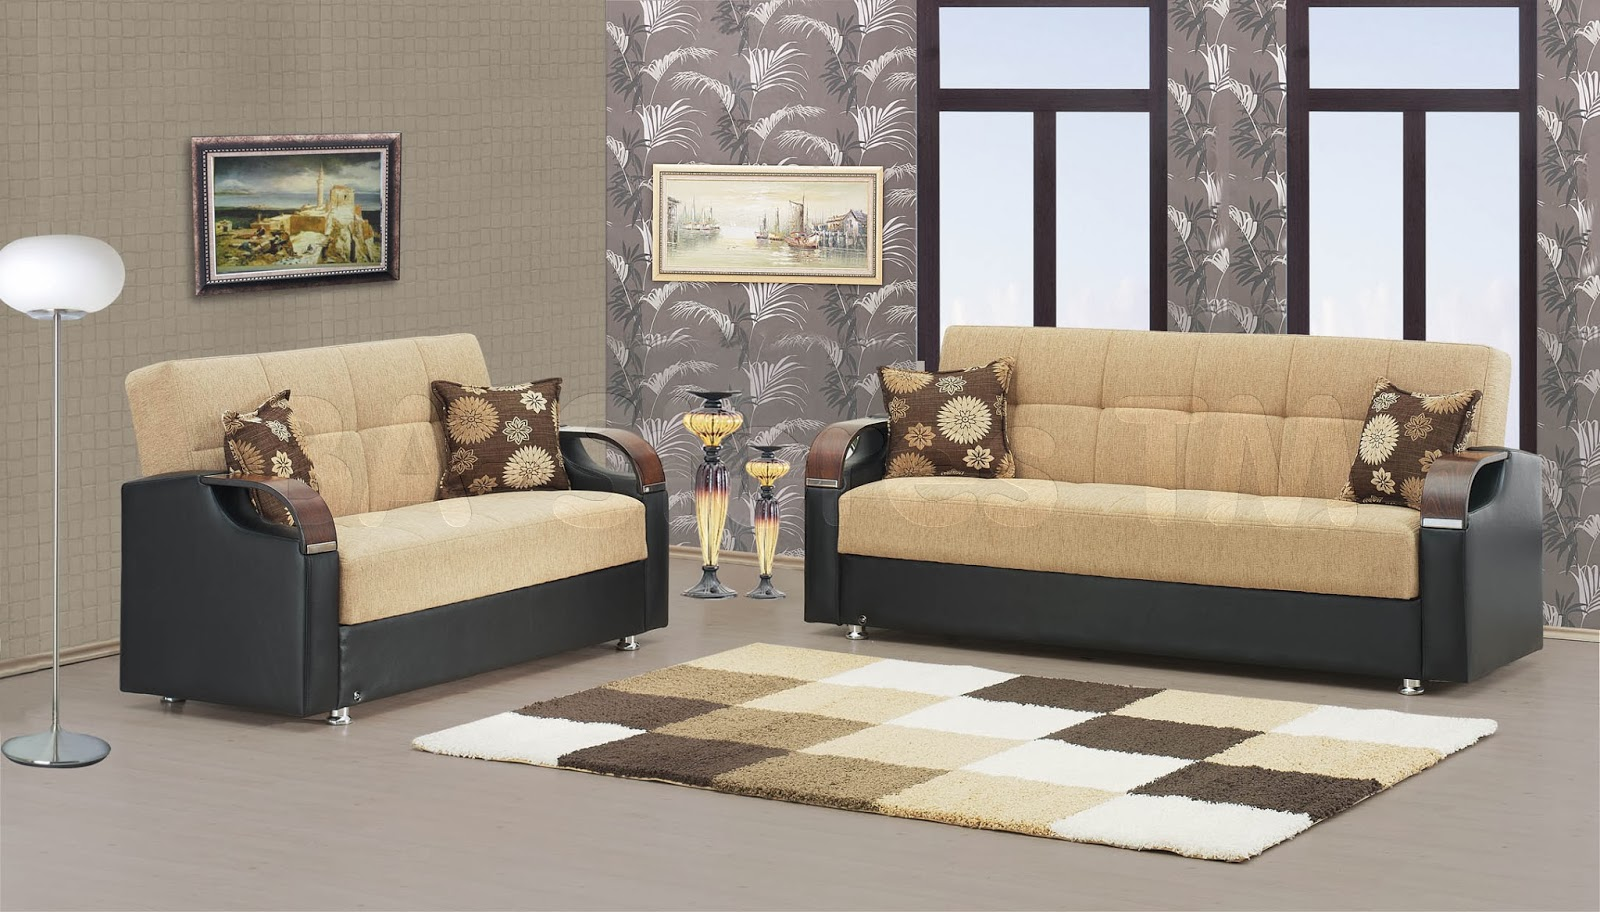 Living Room Design With Leather Sofa